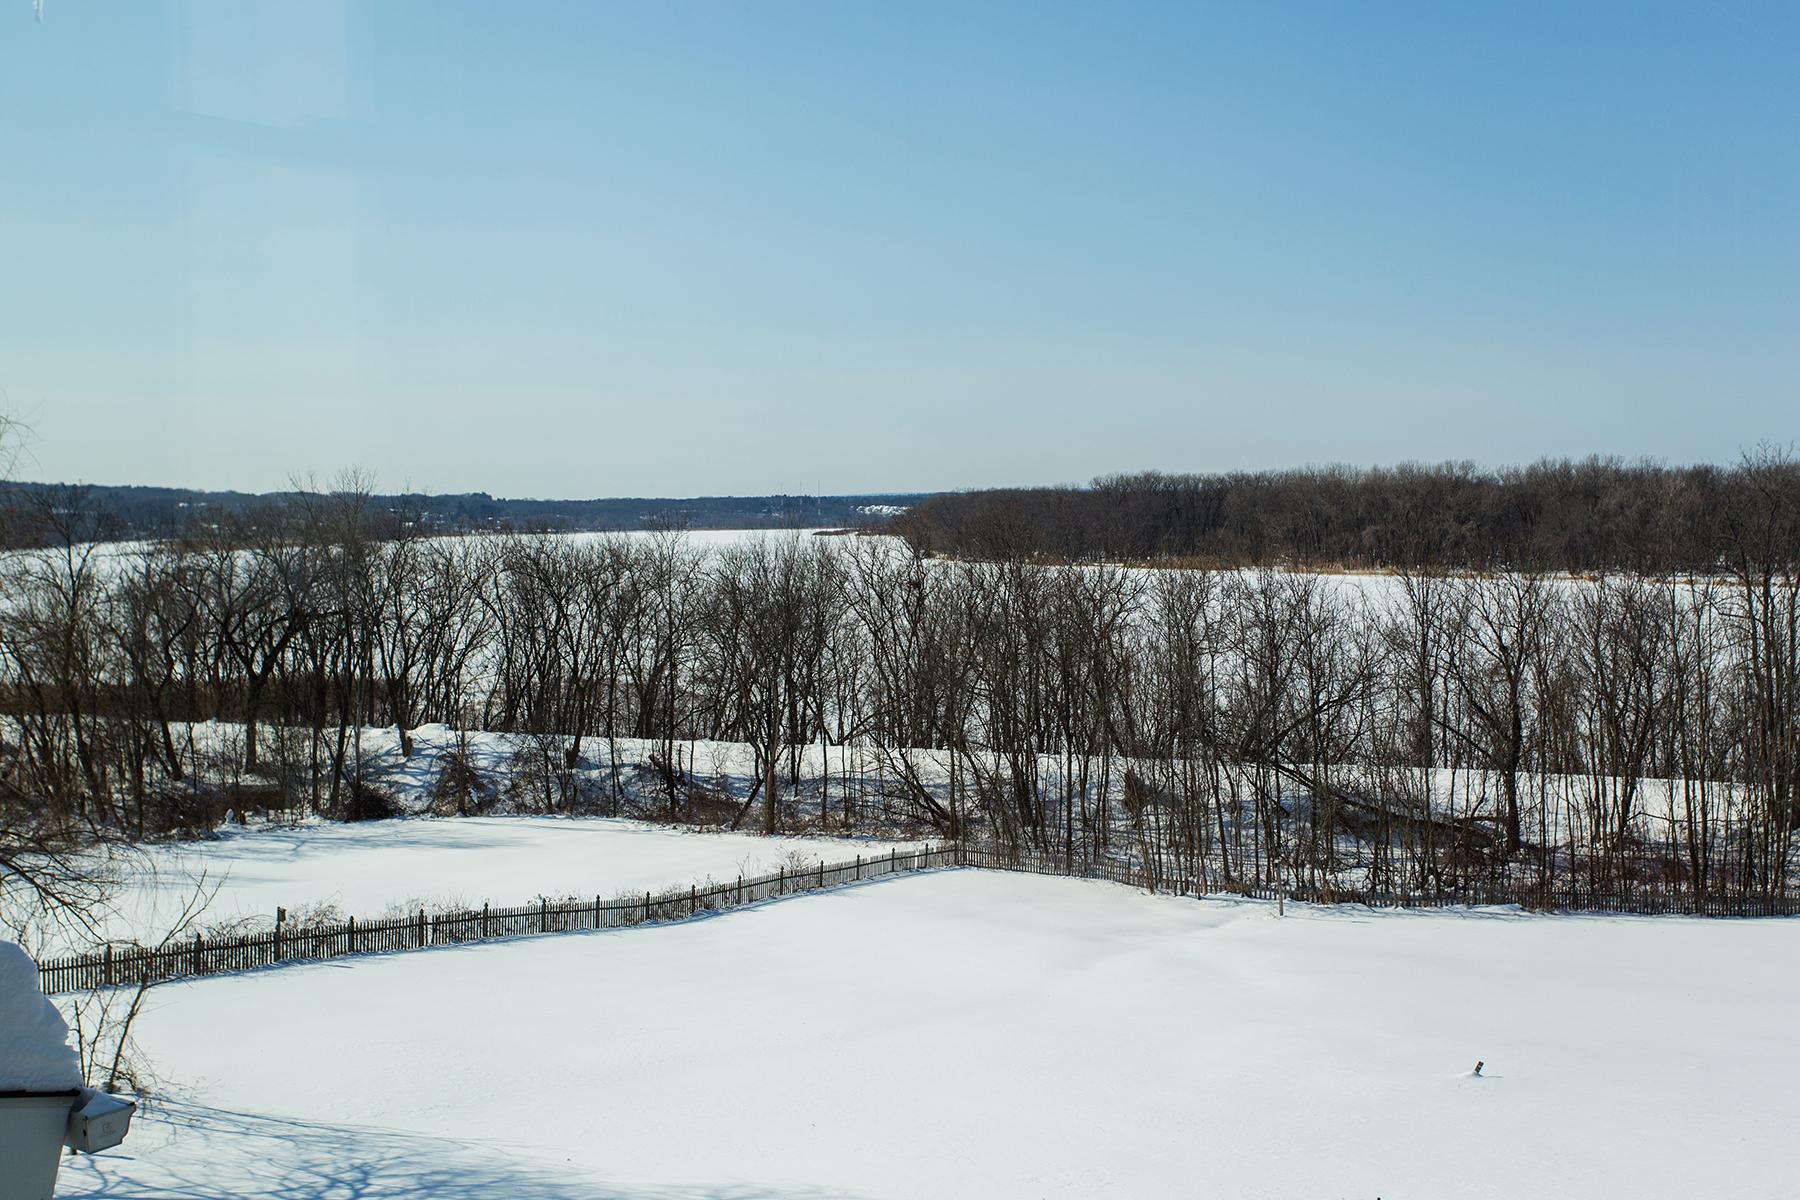 Land for Sale at Building Lot Overlooking the Mohawk River 4237 River Rd Rd Latham, New York 12110 United States